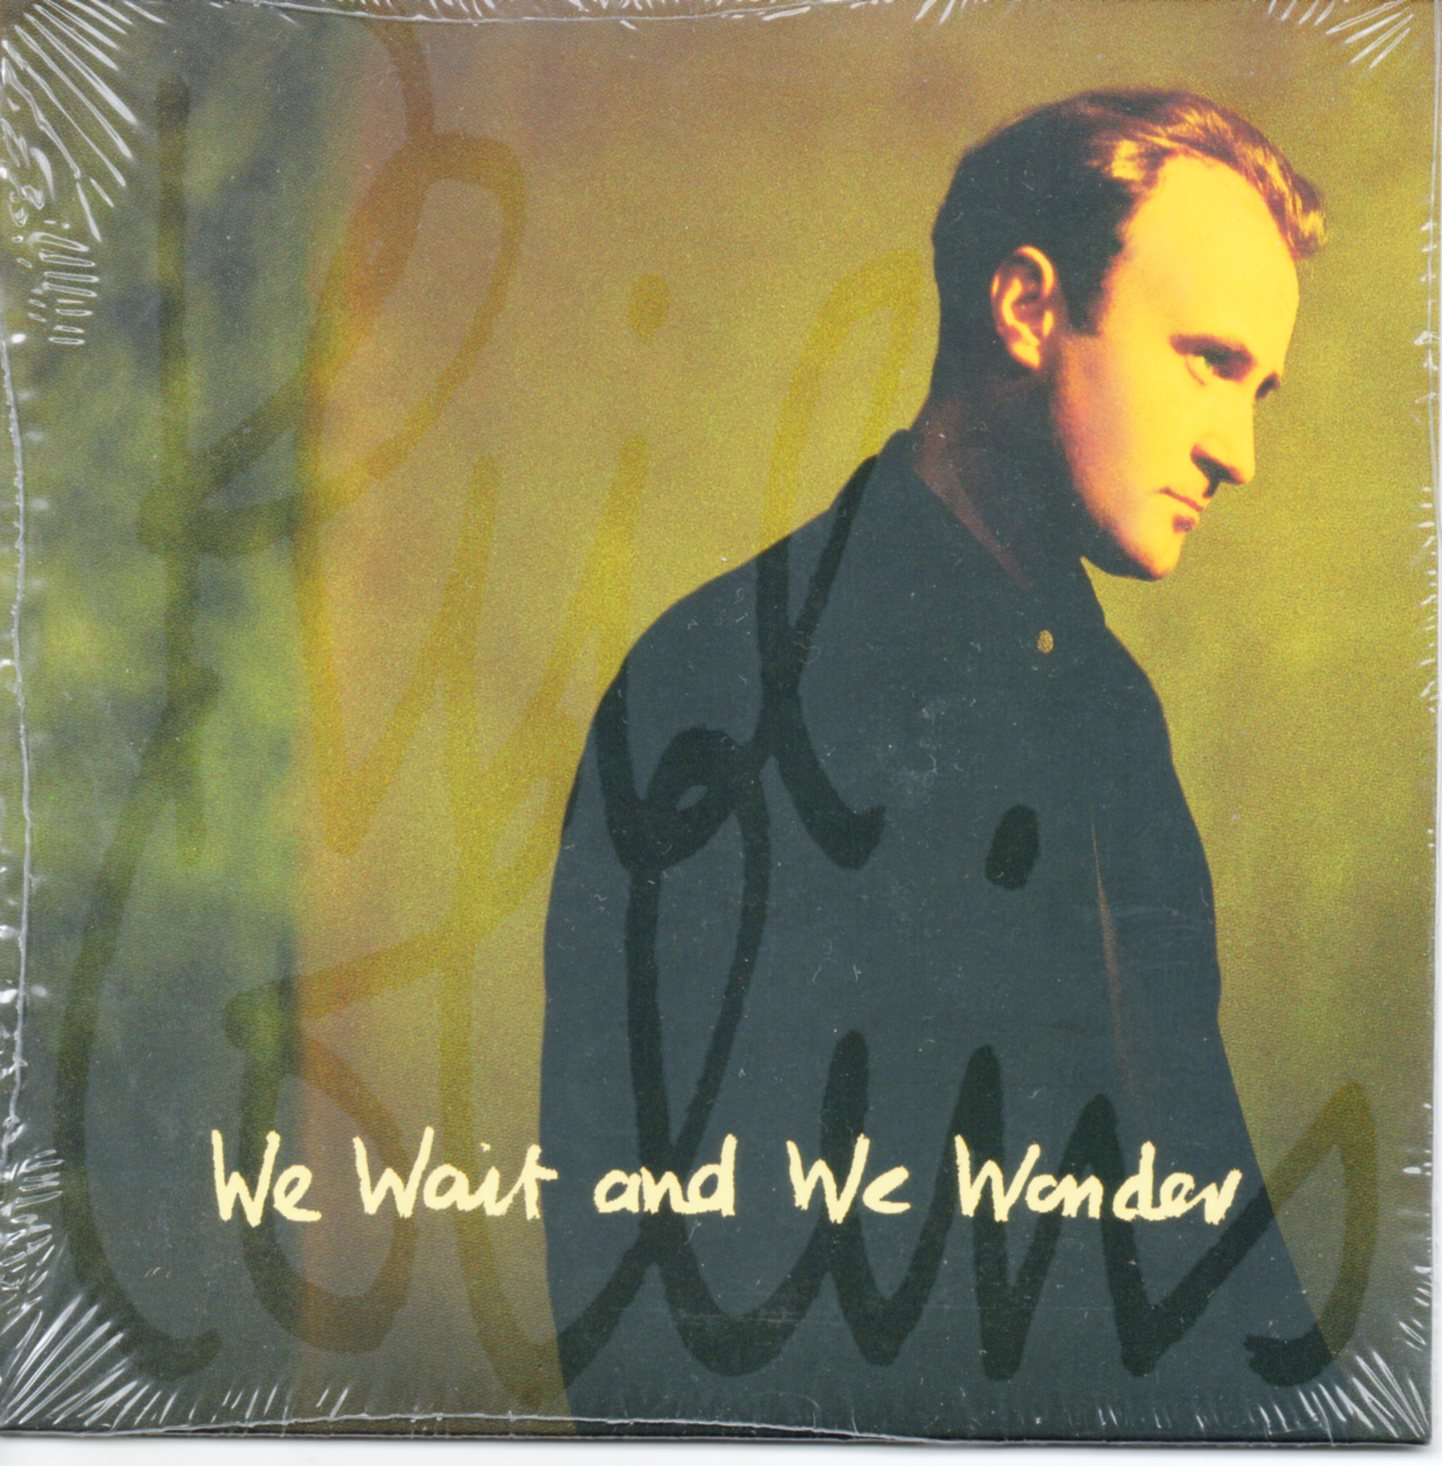 PHIL COLLINS - We wait and we wander 2-Track CARD SLEEVE - CD single